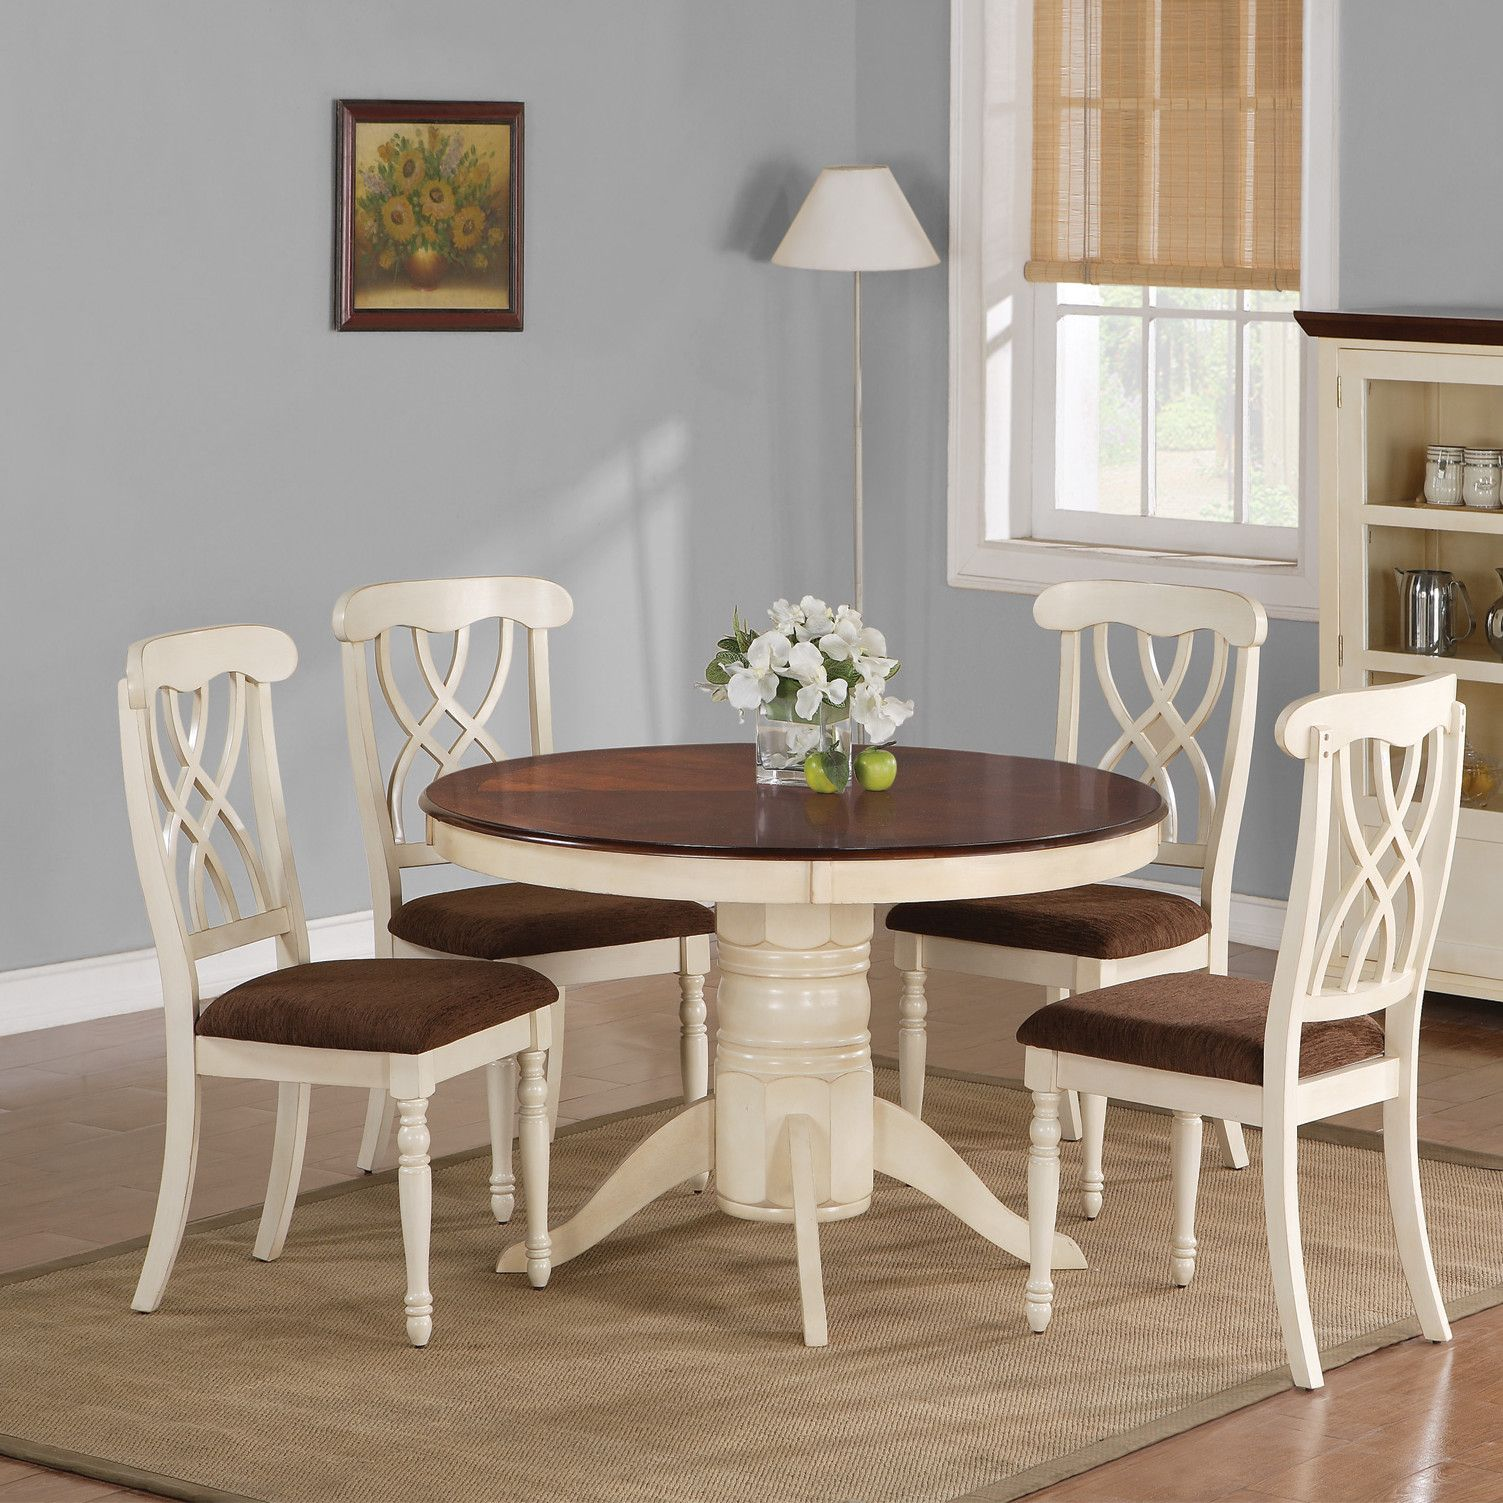 Round Dining Table - for the great room | Home Projects/Plans ...